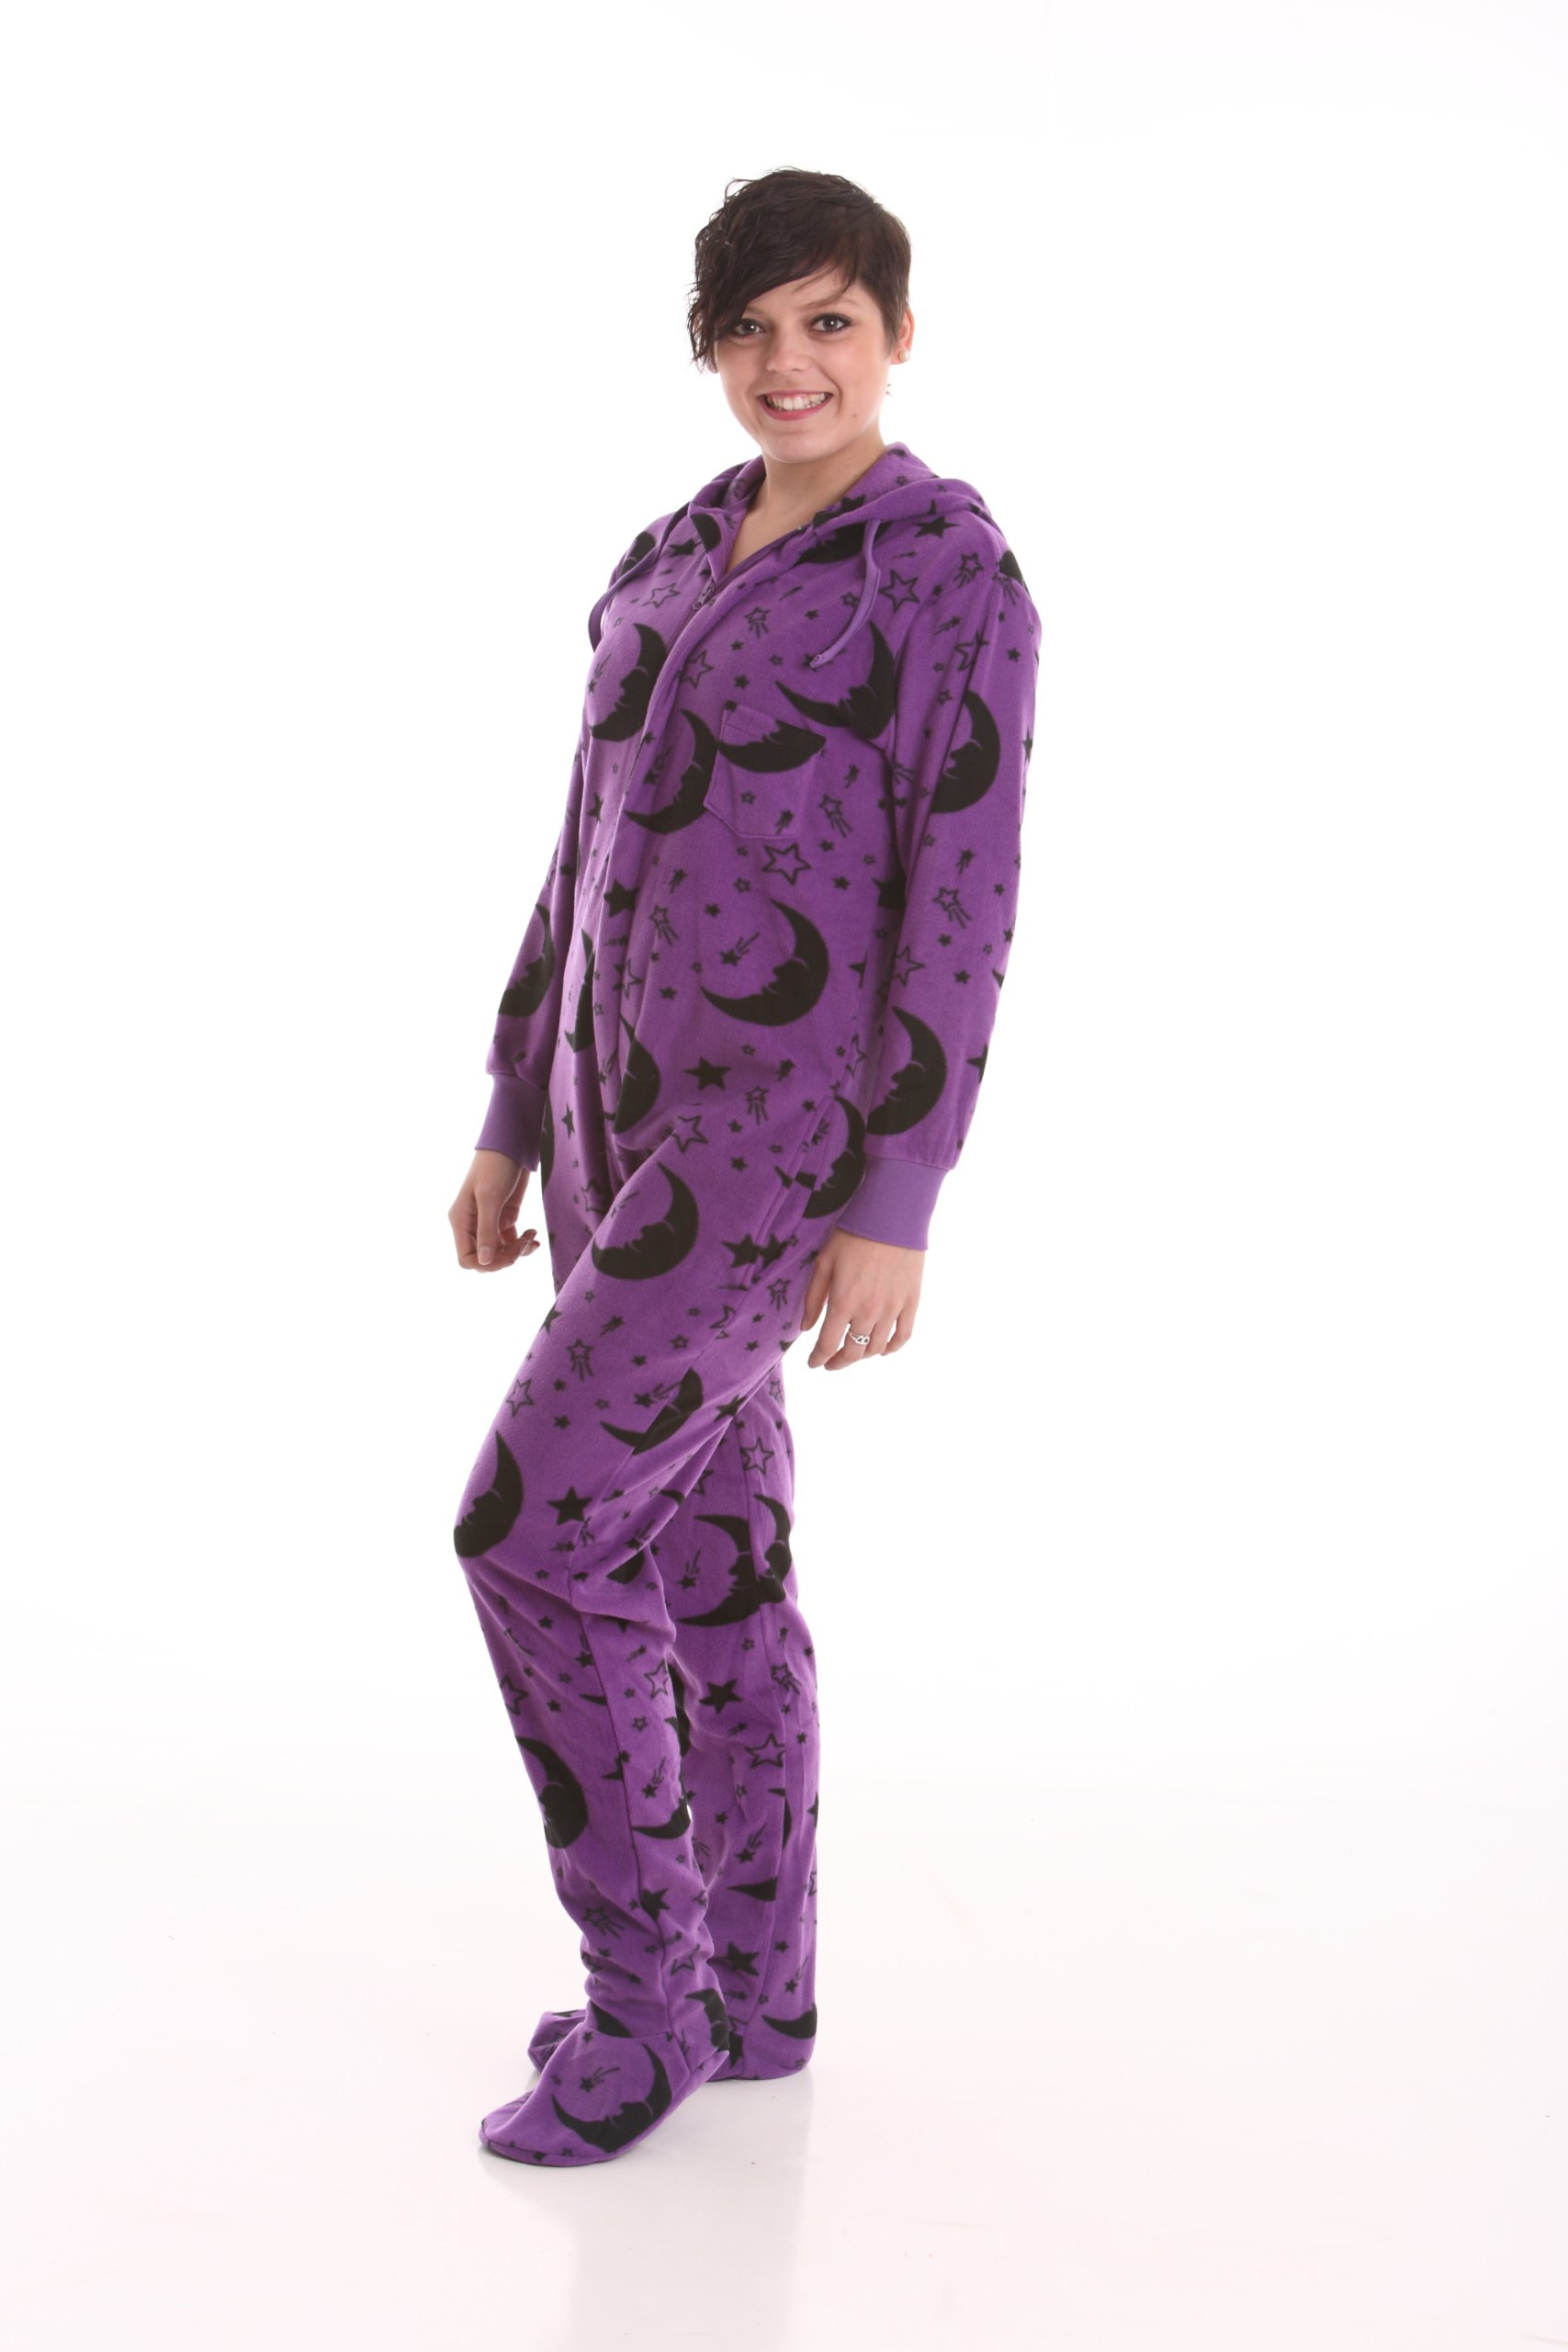 Wizard Footed Pajamas - Adult Footie Jumpsuit XS - XXLarge-Size on Height